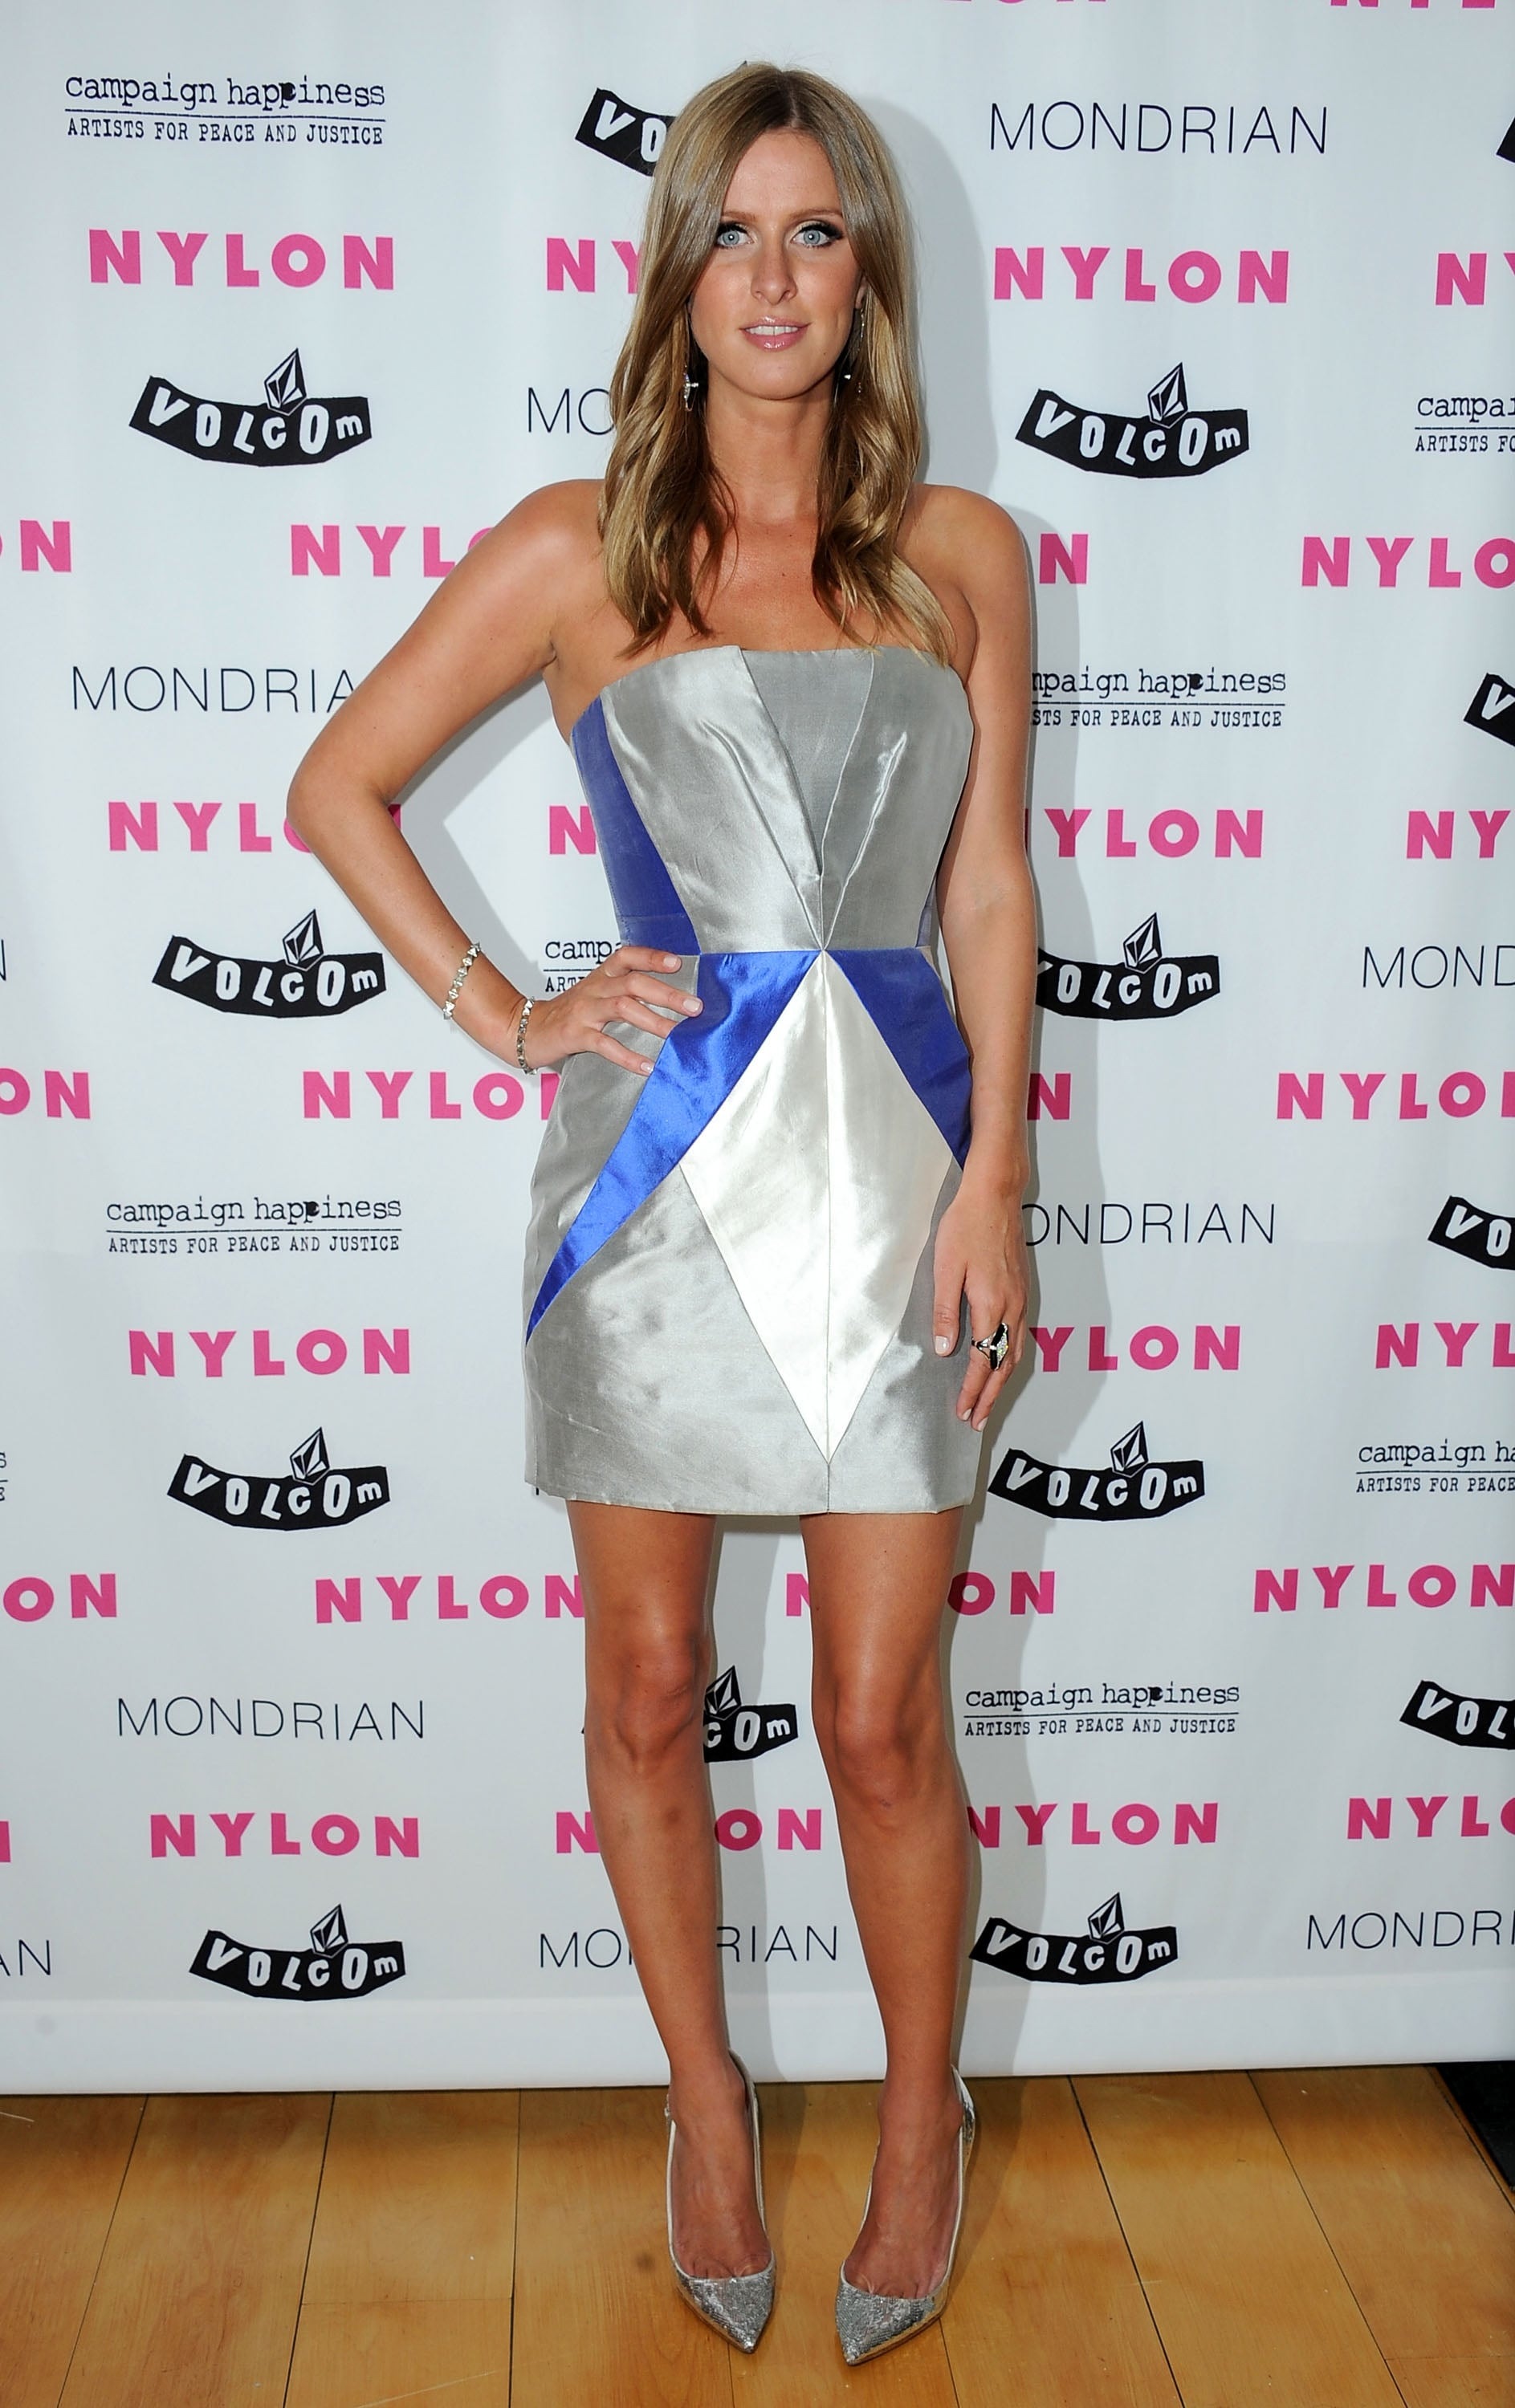 Nicky Hilton rocked a strapless look.